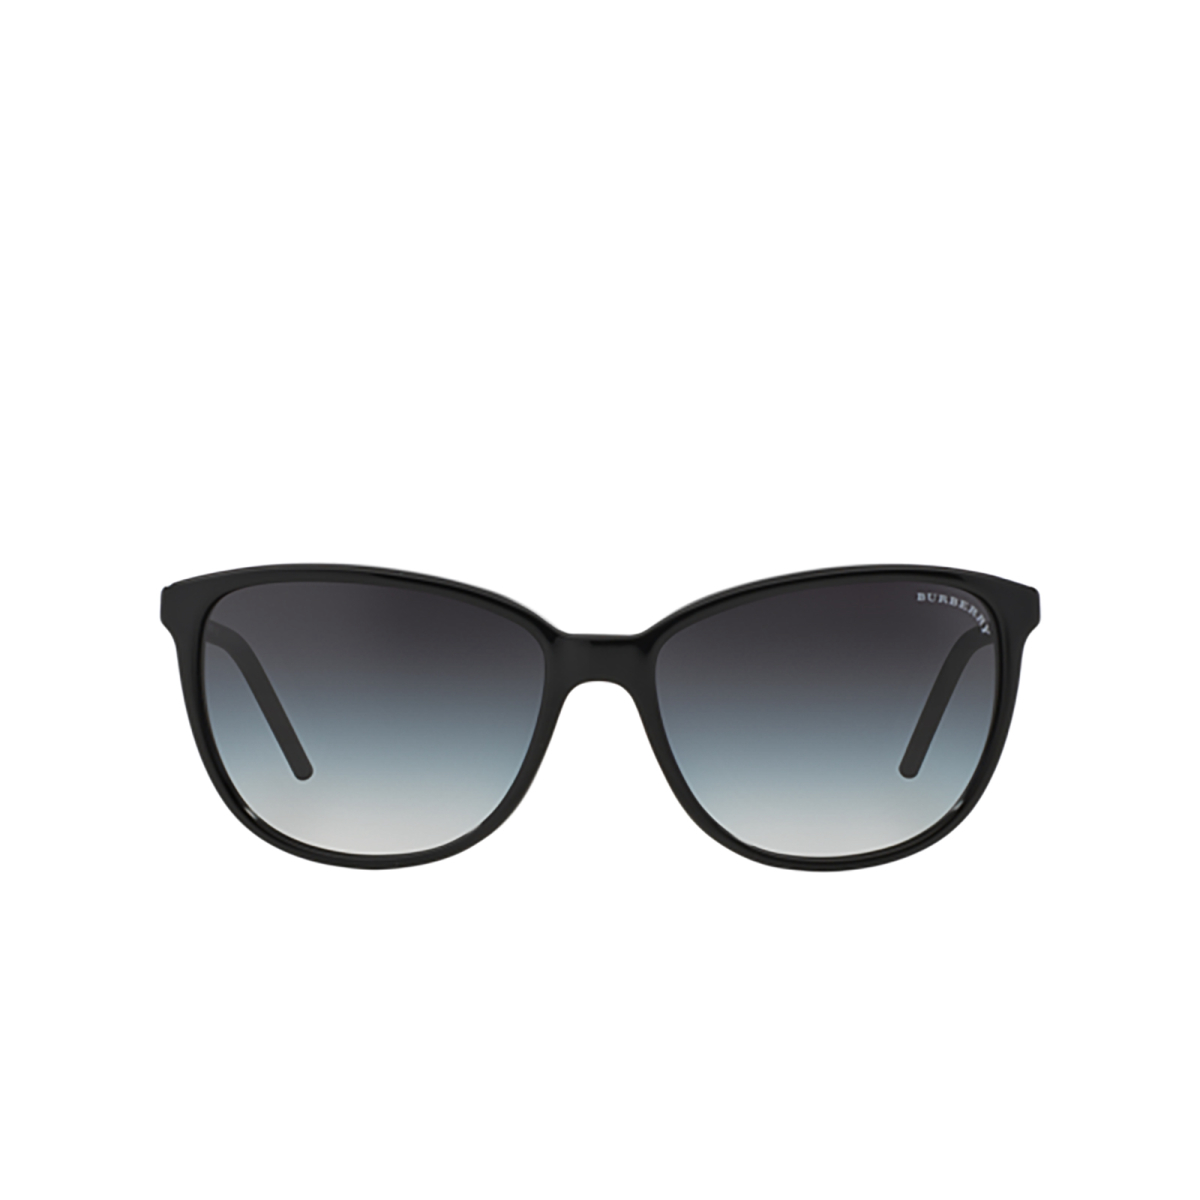 Burberry® Cat-eye Sunglasses: BE4180 color Black 30018G - front view.